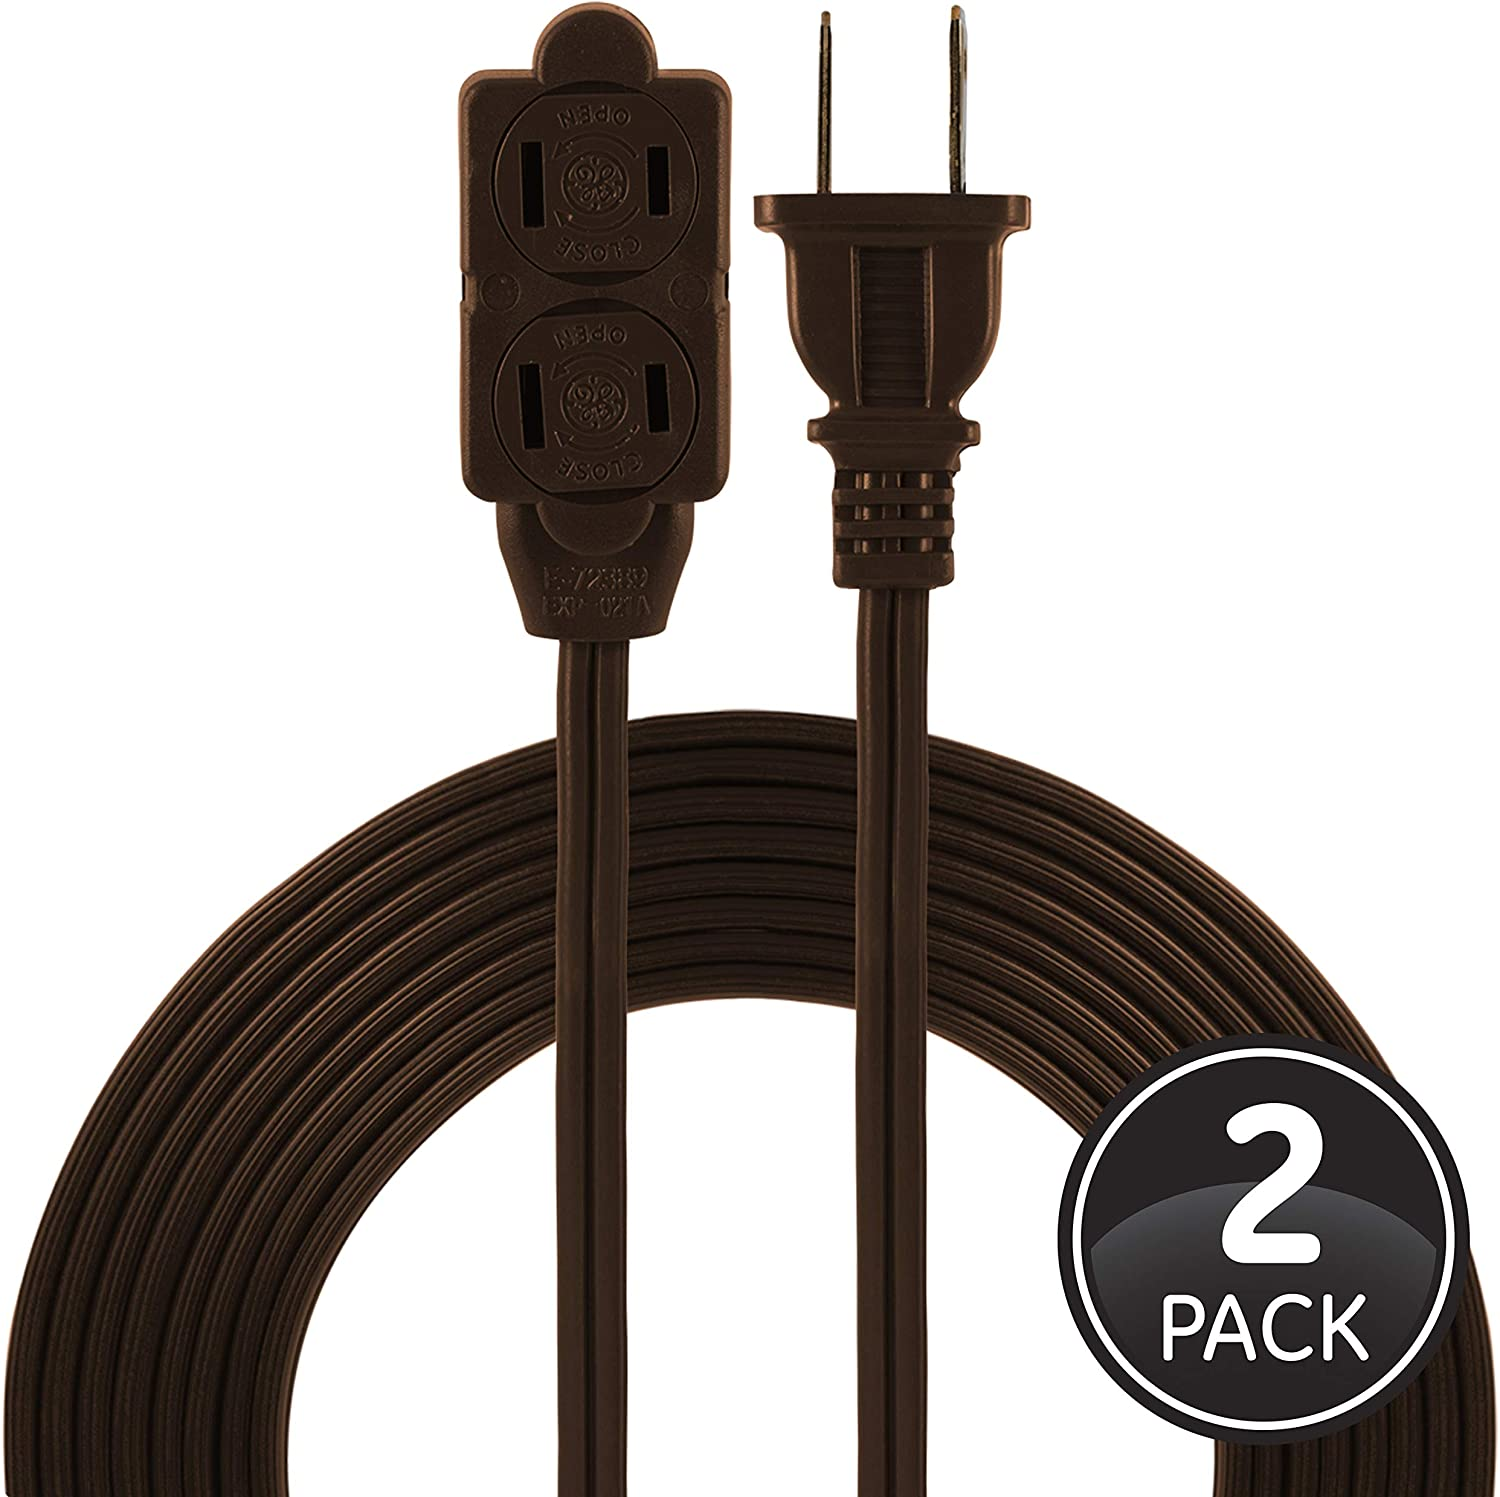 GE 12 Ft 2 Pack, Brown, 50409 Extension Cord, 3 Power Strip, 2 Prong, 16 Gauge, Twist-to-Close Safety Outlet Covers, Indoor Rated, Perfect for Home, Office or Kitchen, UL Listed